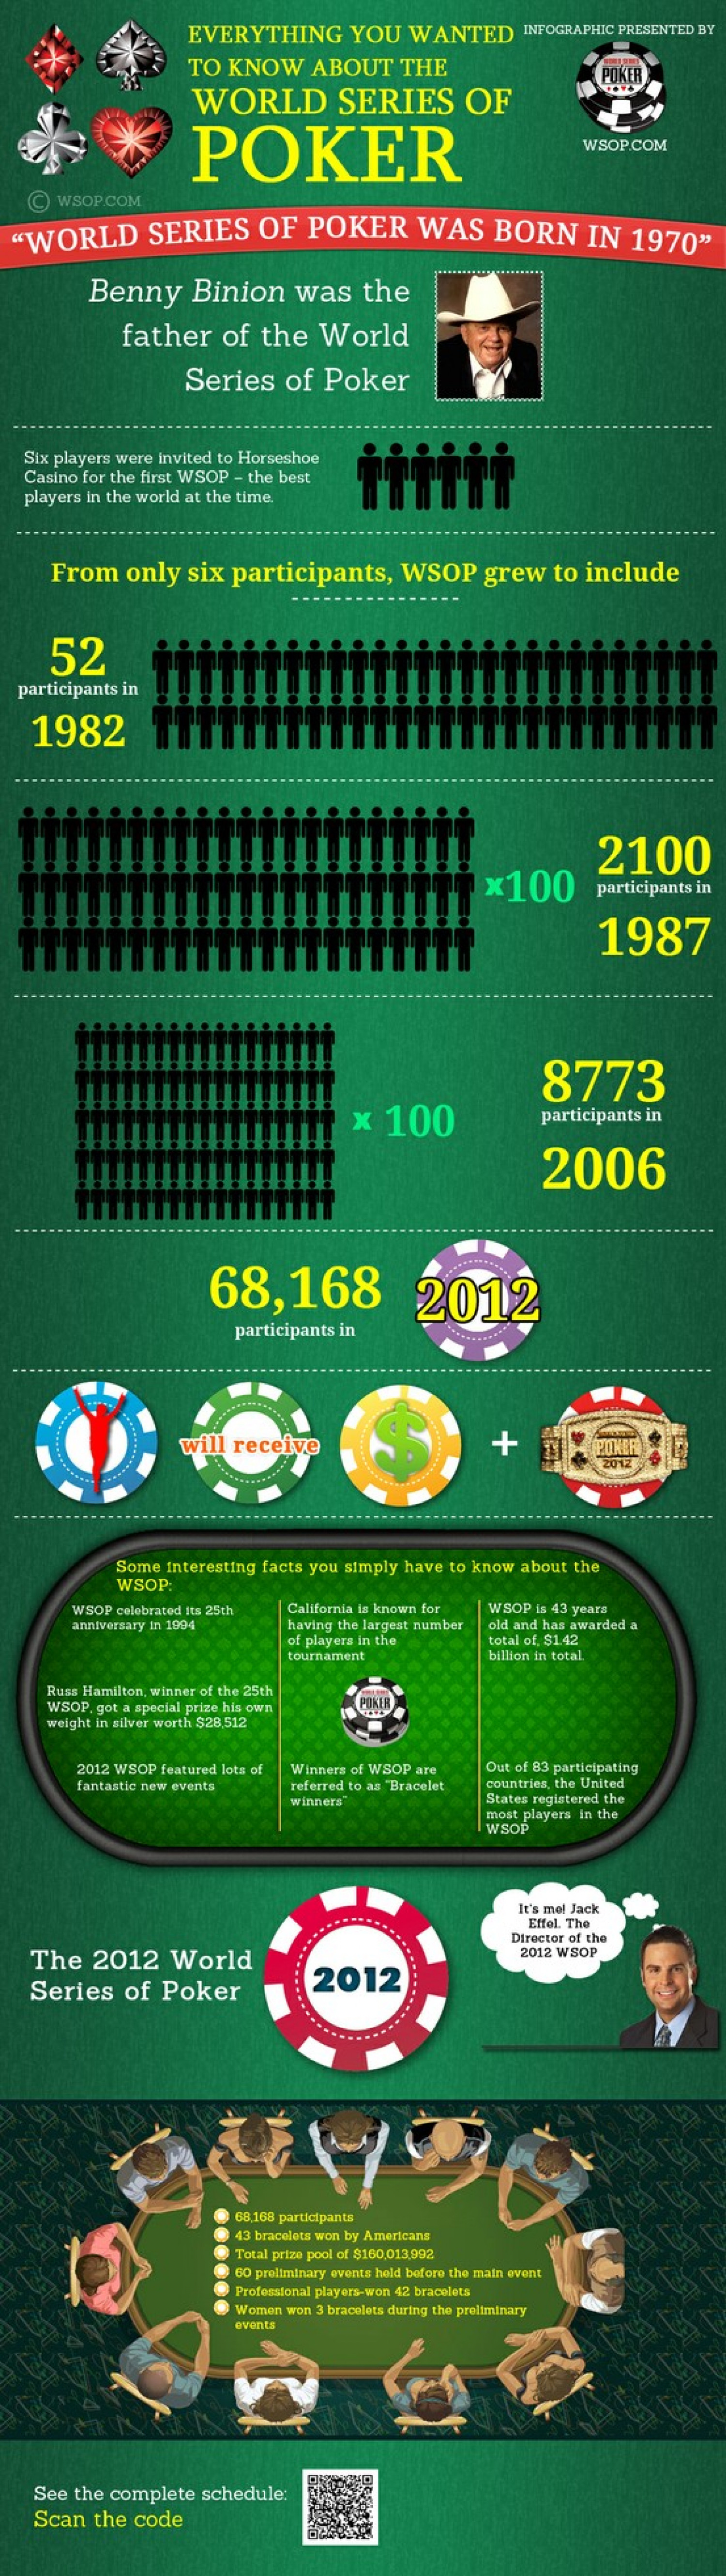 World Of Series Poker – All you wanted to know Infographic